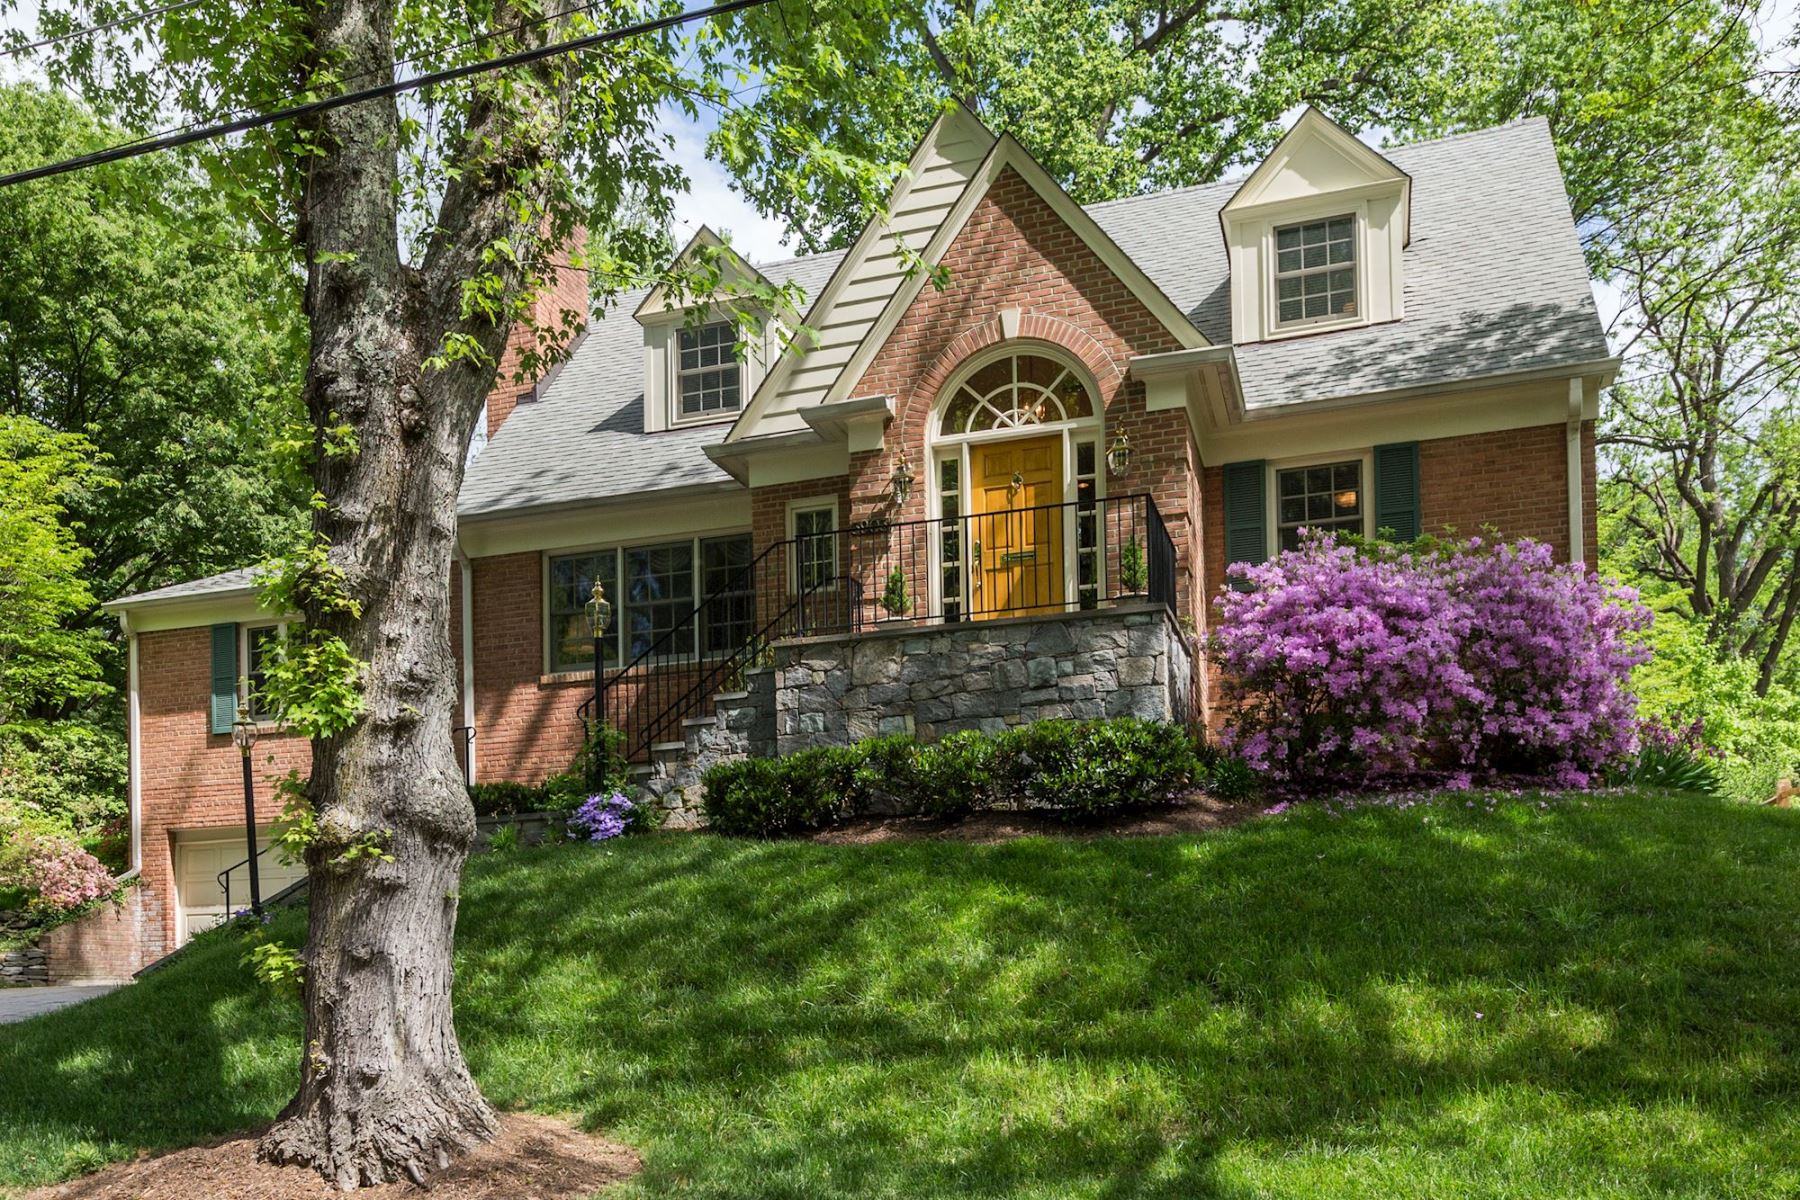 Single Family Home for Sale at 3903 Franklin Street, Kensington Kensington, Maryland 20895 United States